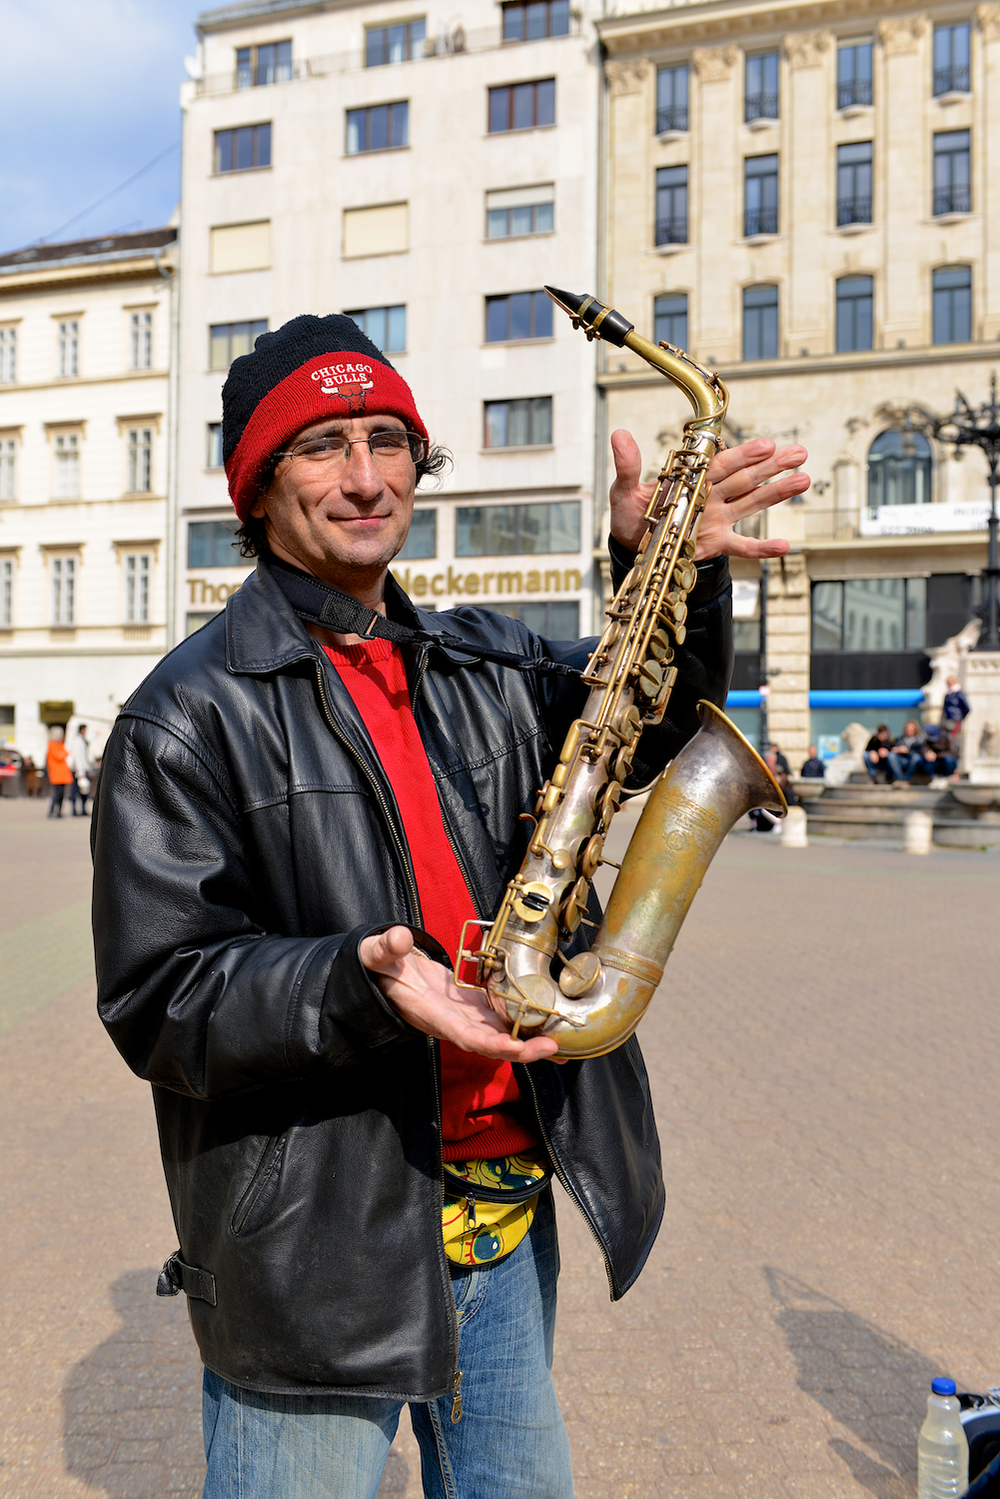 The Saxophone Player 02.jpg